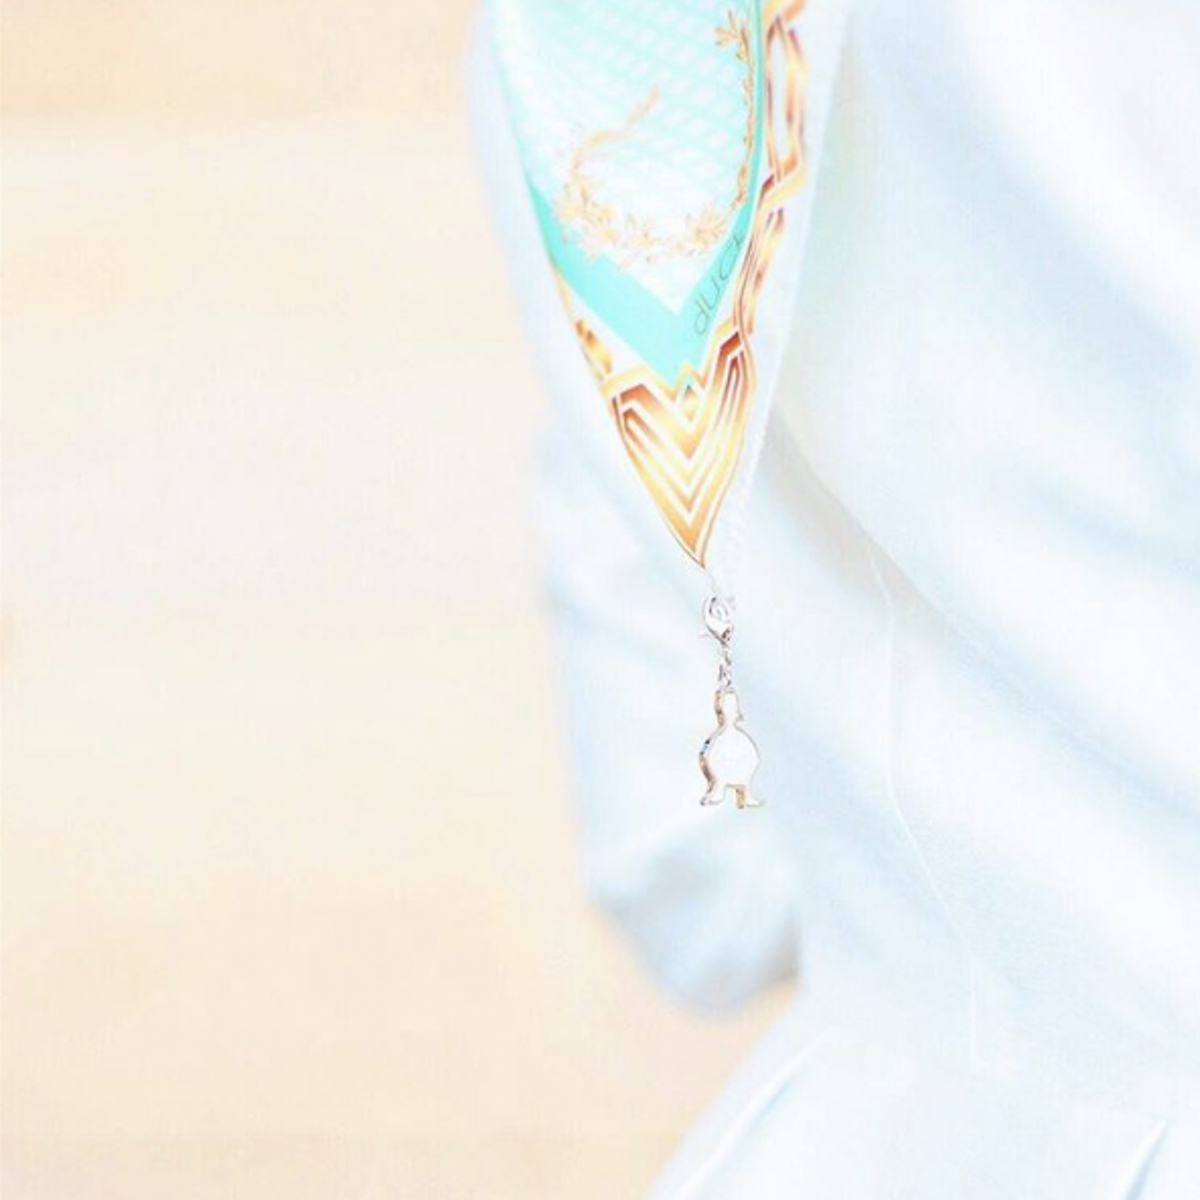 The detail of the hanging dUCk charm, covered in mother of pearl, which symbolises the creation that blends the two brands seamlessly.Picture Credit to @thedUCkgroup media